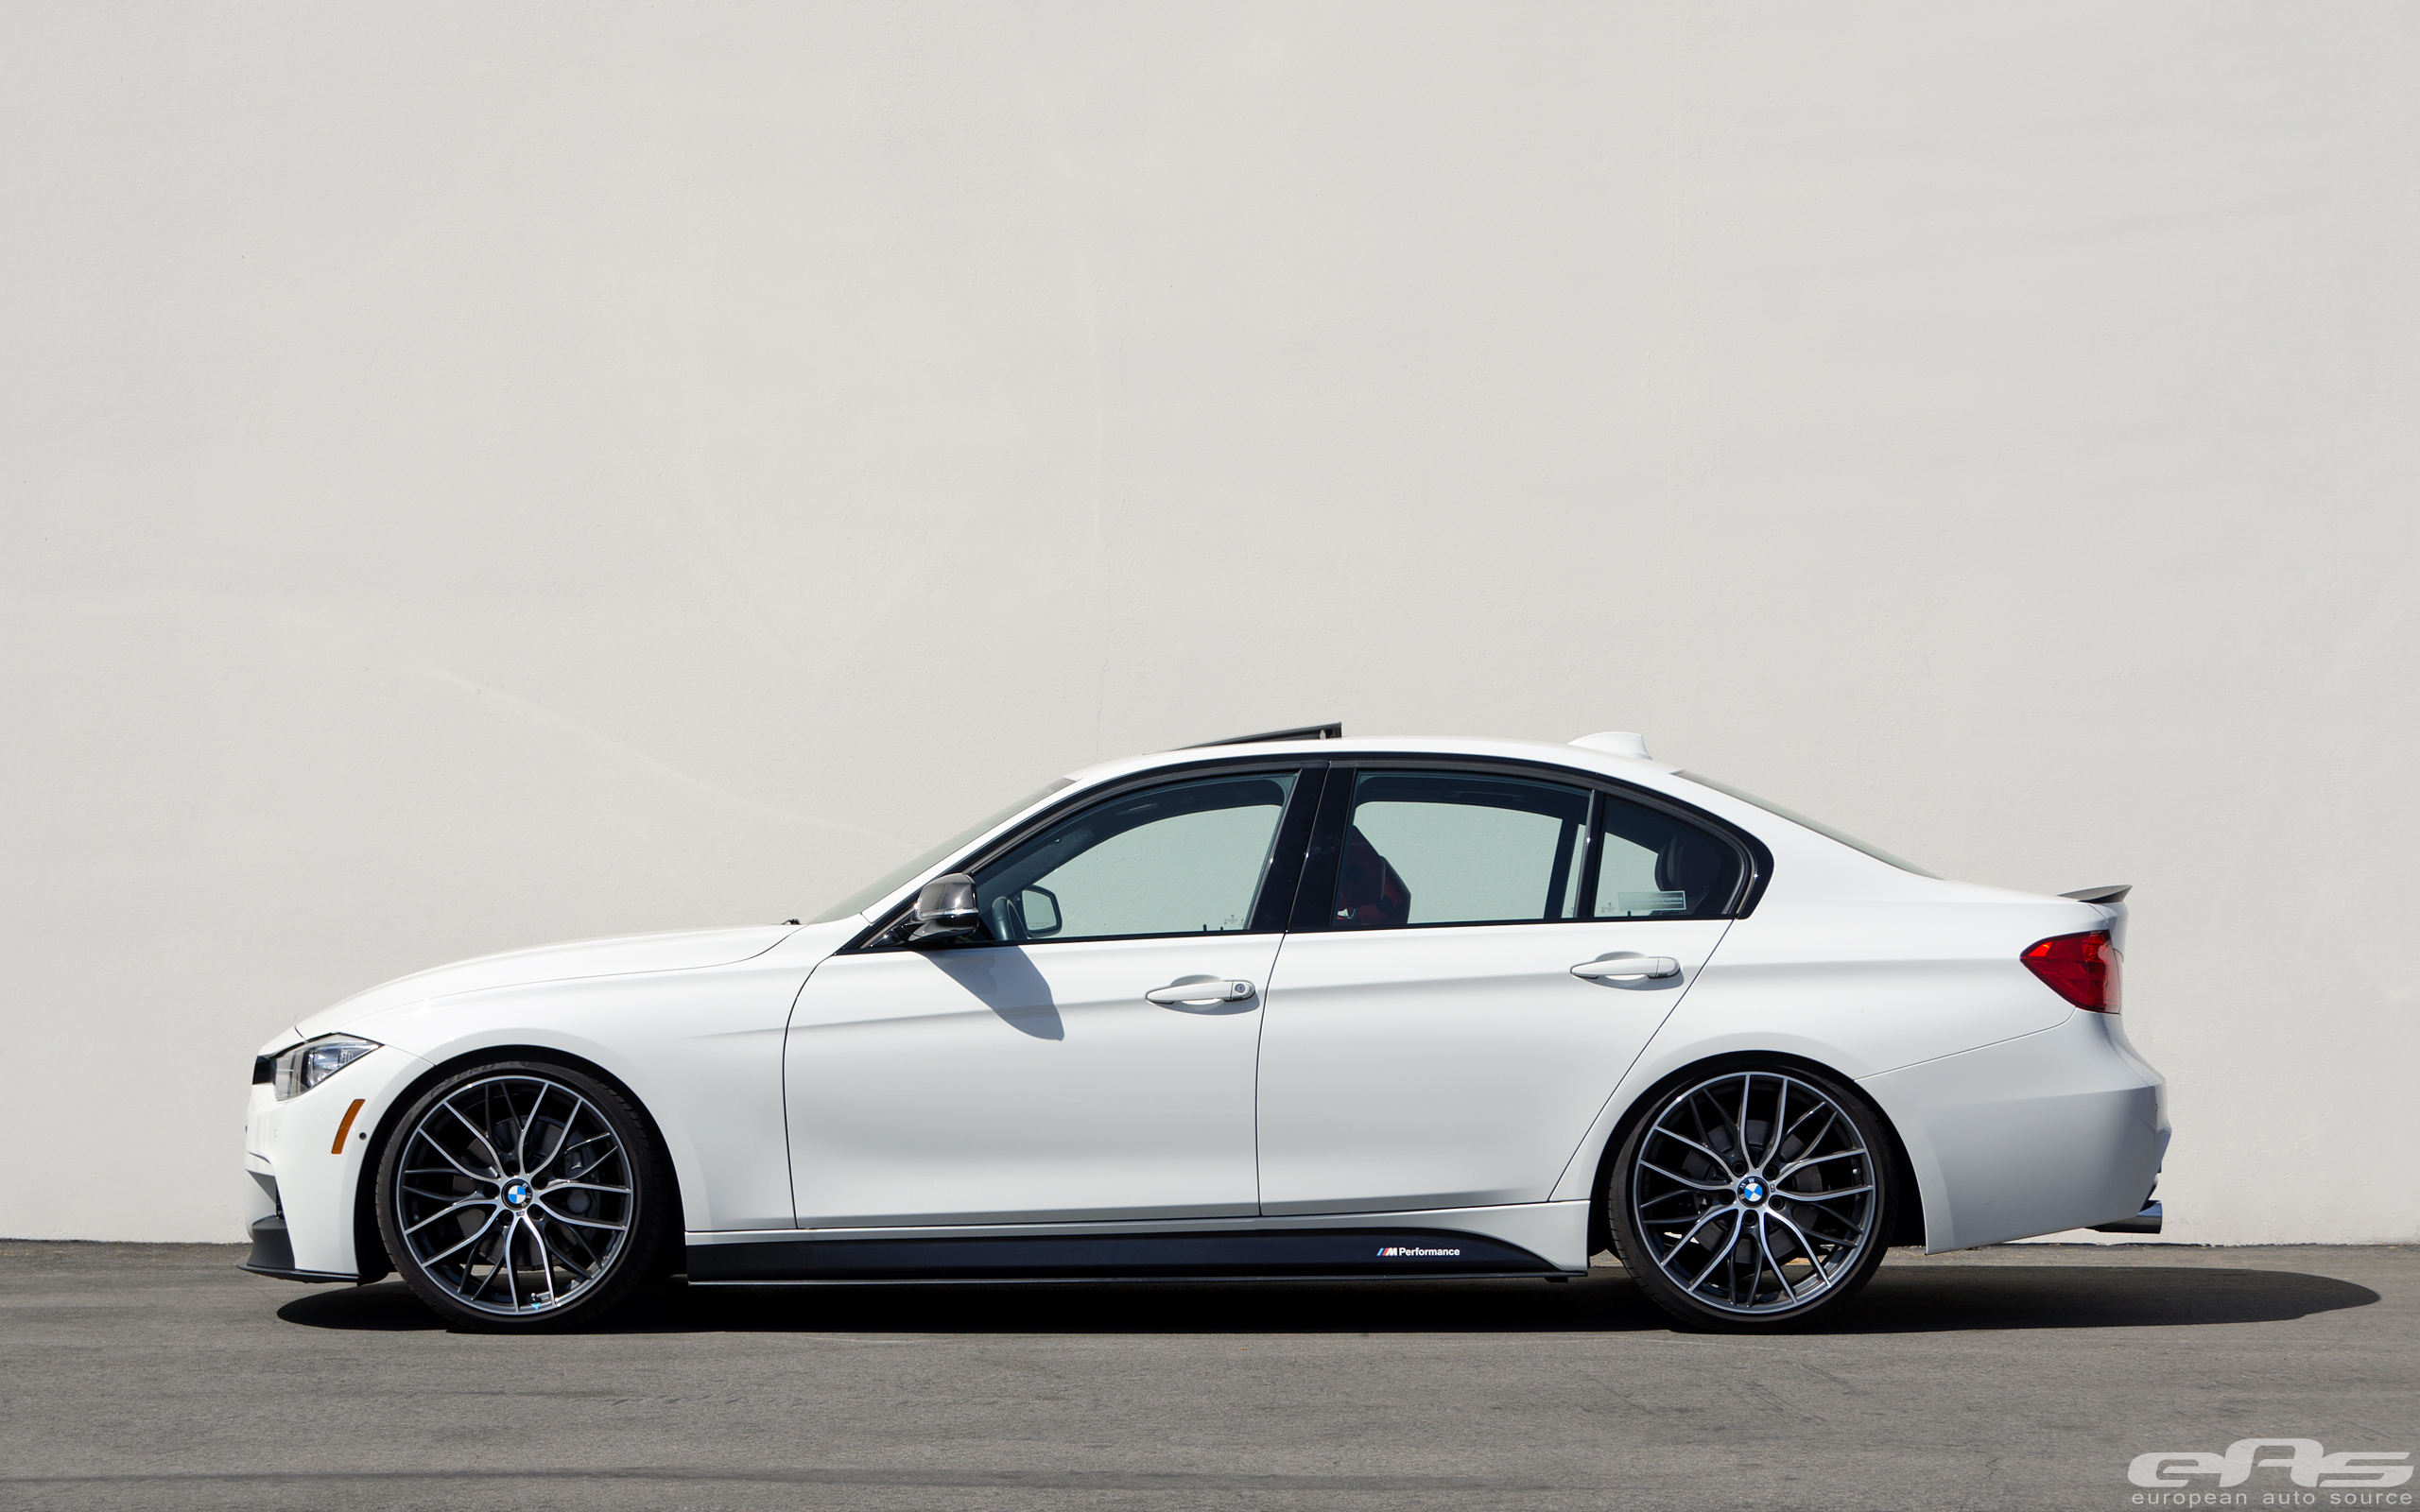 Alpine white f30 335i bmw performance cars pinterest bmw cars and dream cars